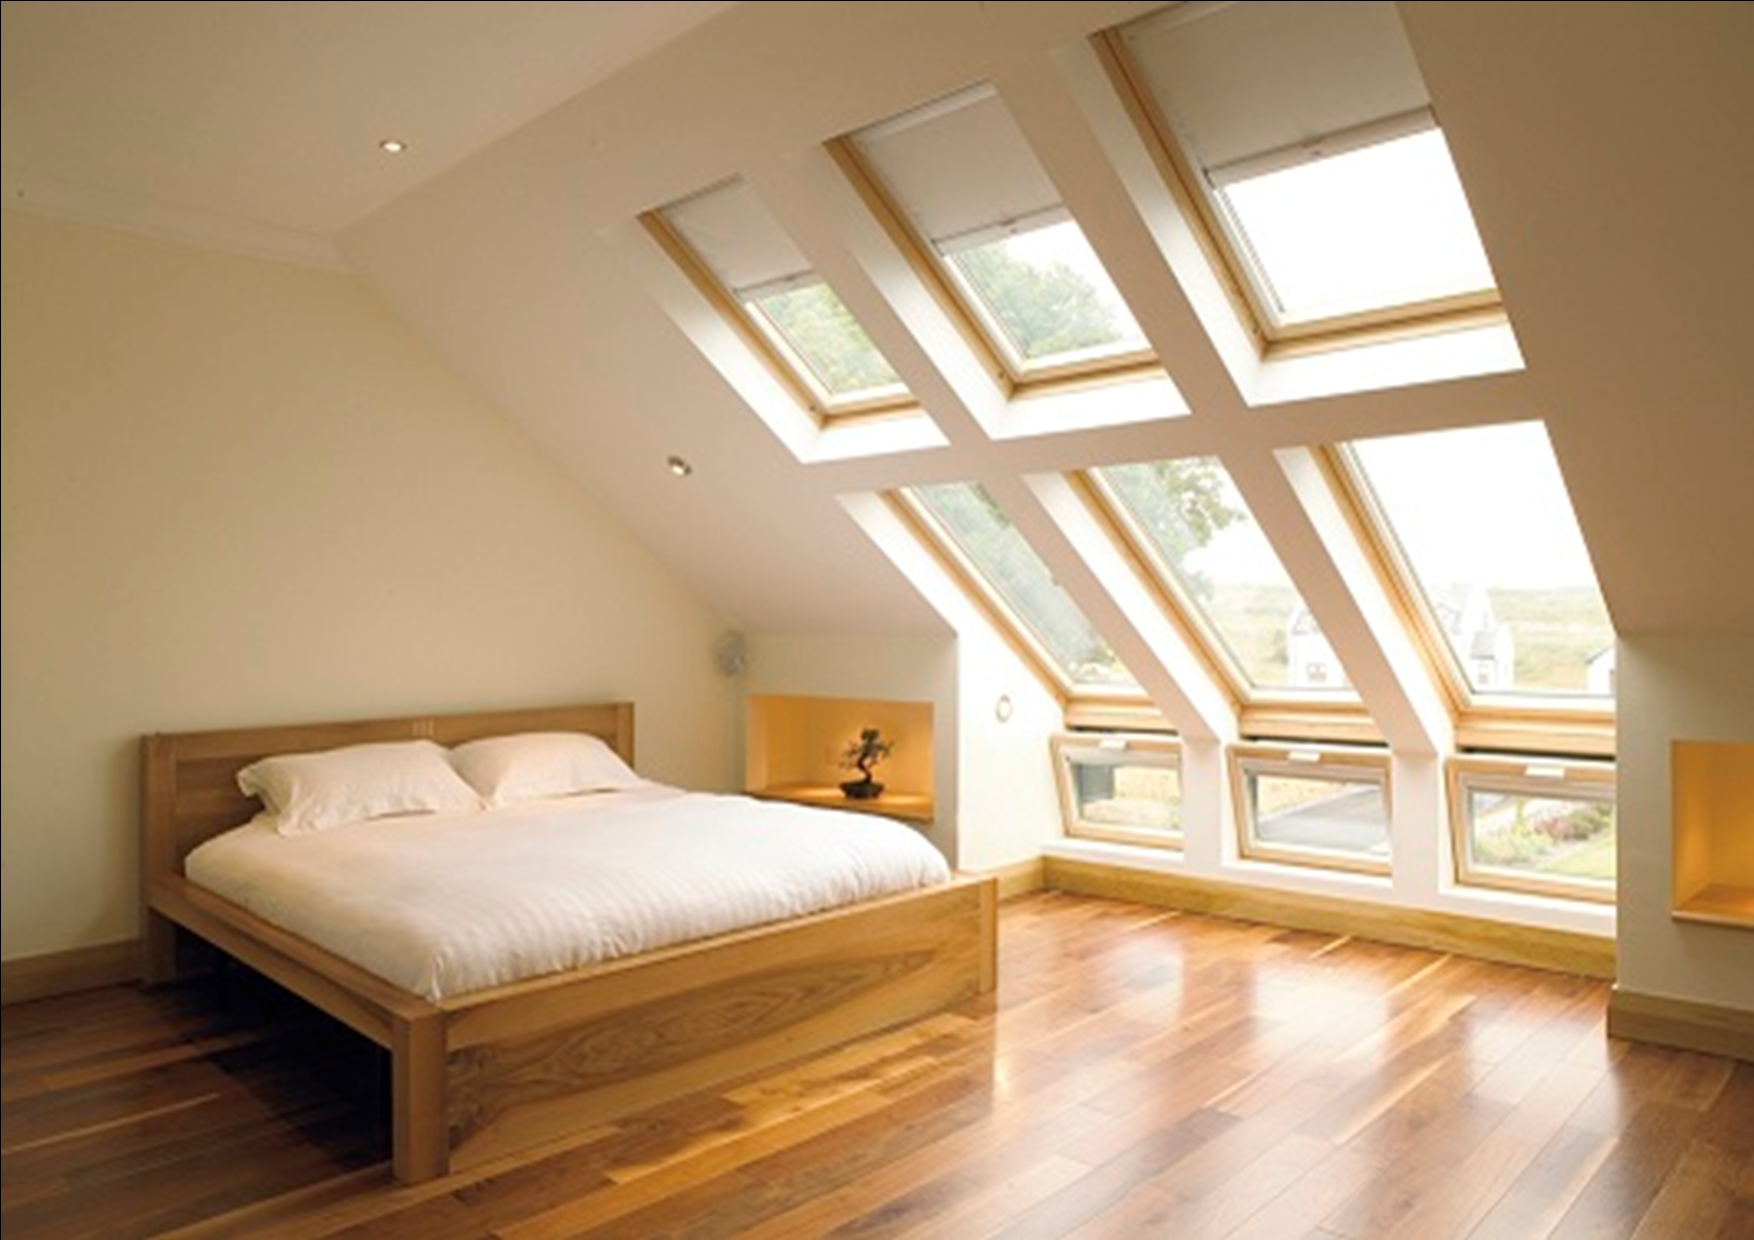 6-Design-ideas-for-loft-conversions